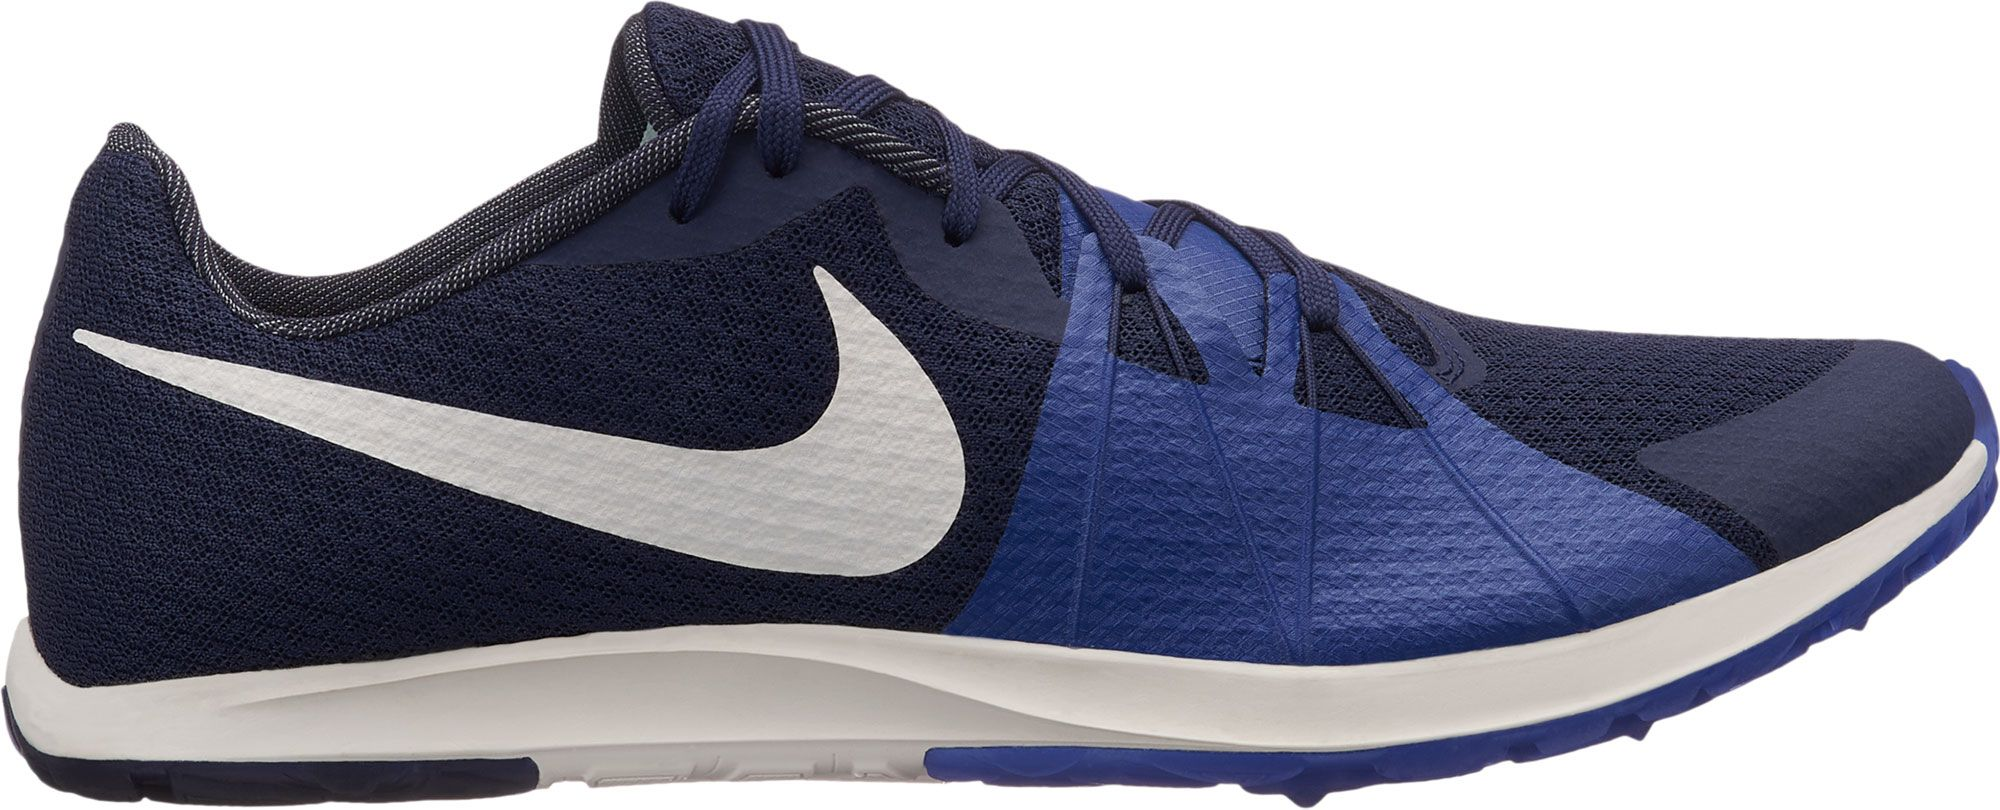 d2768bbdf5b7 Nike Men s Zoom Rival Waffle Track and Field Shoes